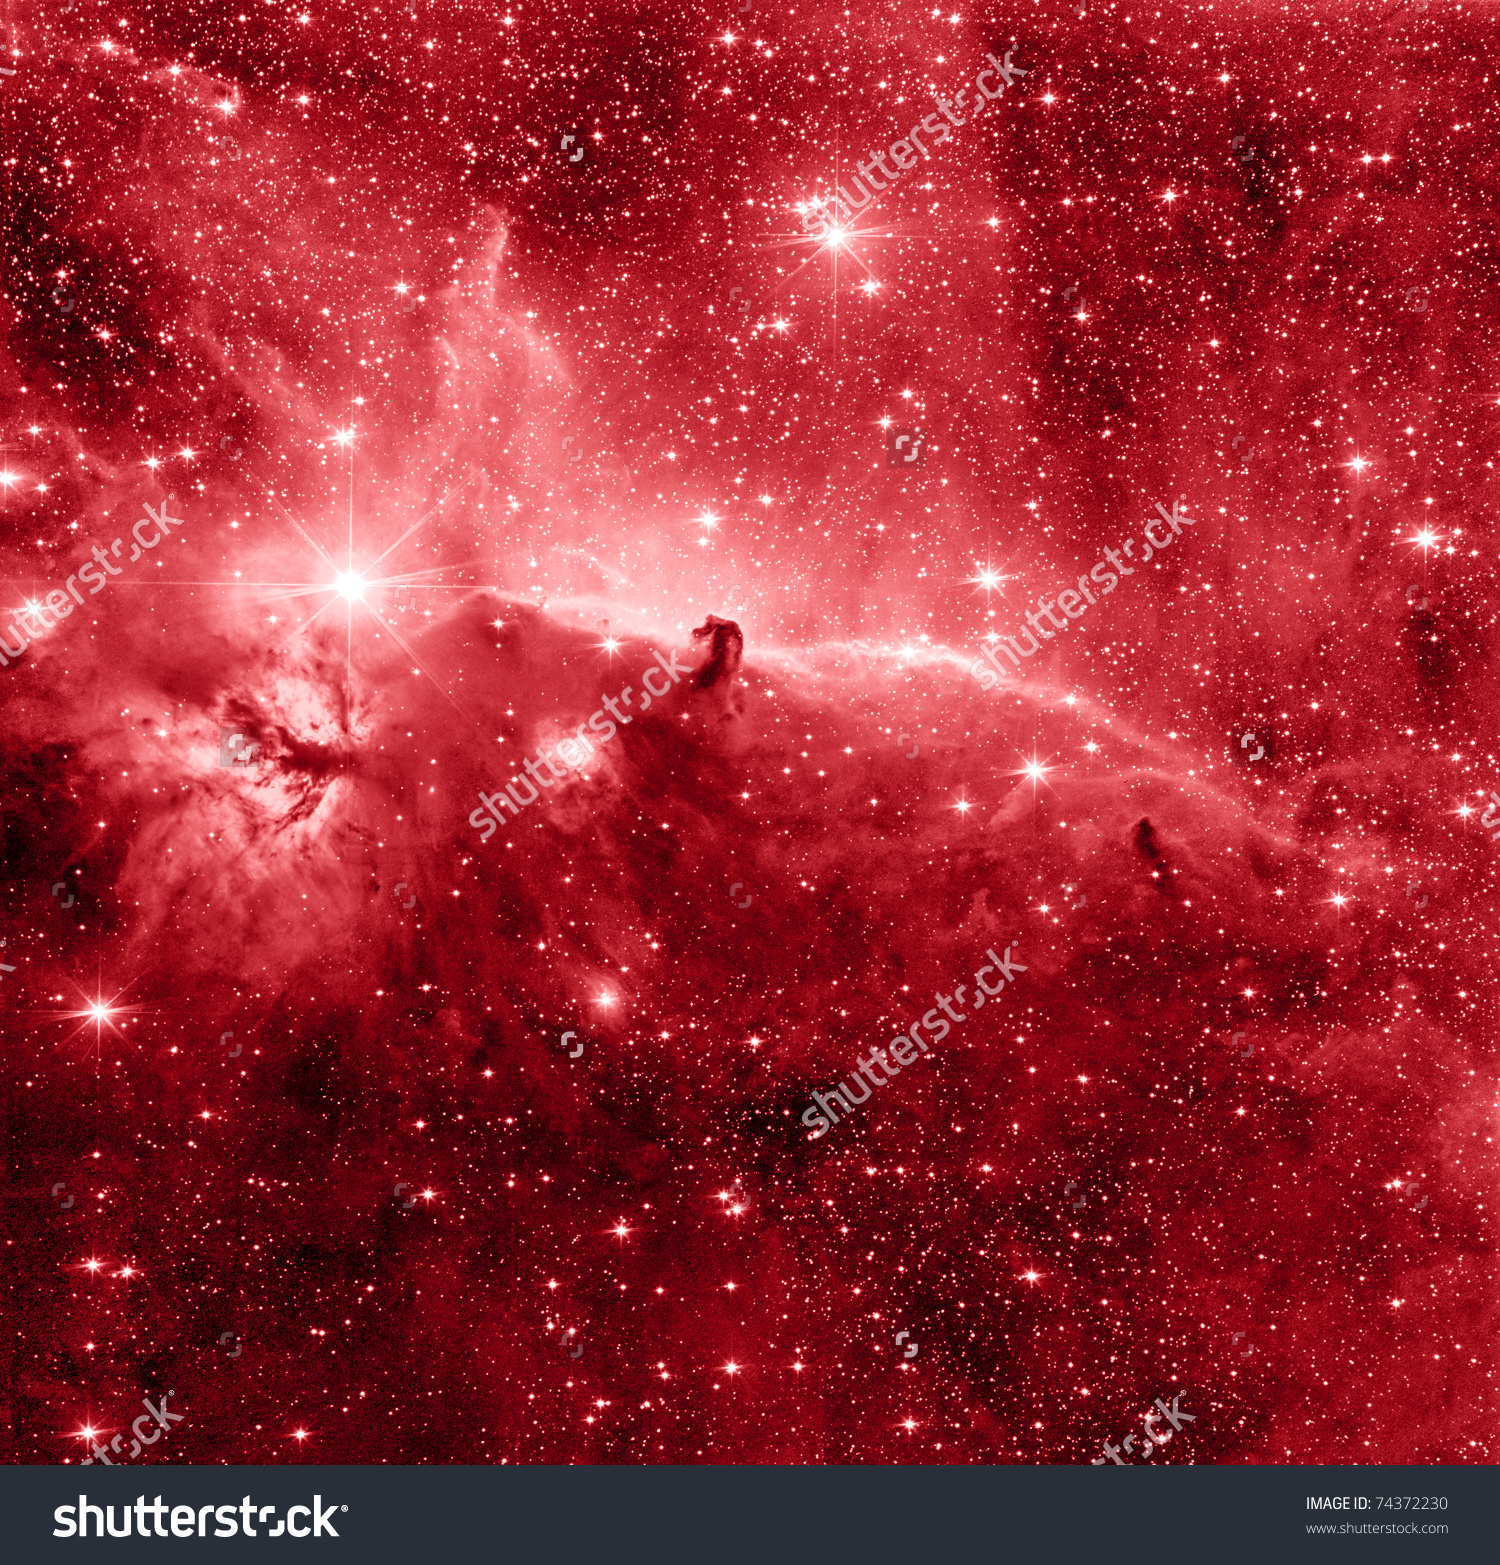 Horse Head Nebula Red Color Stock Photo 74372230.